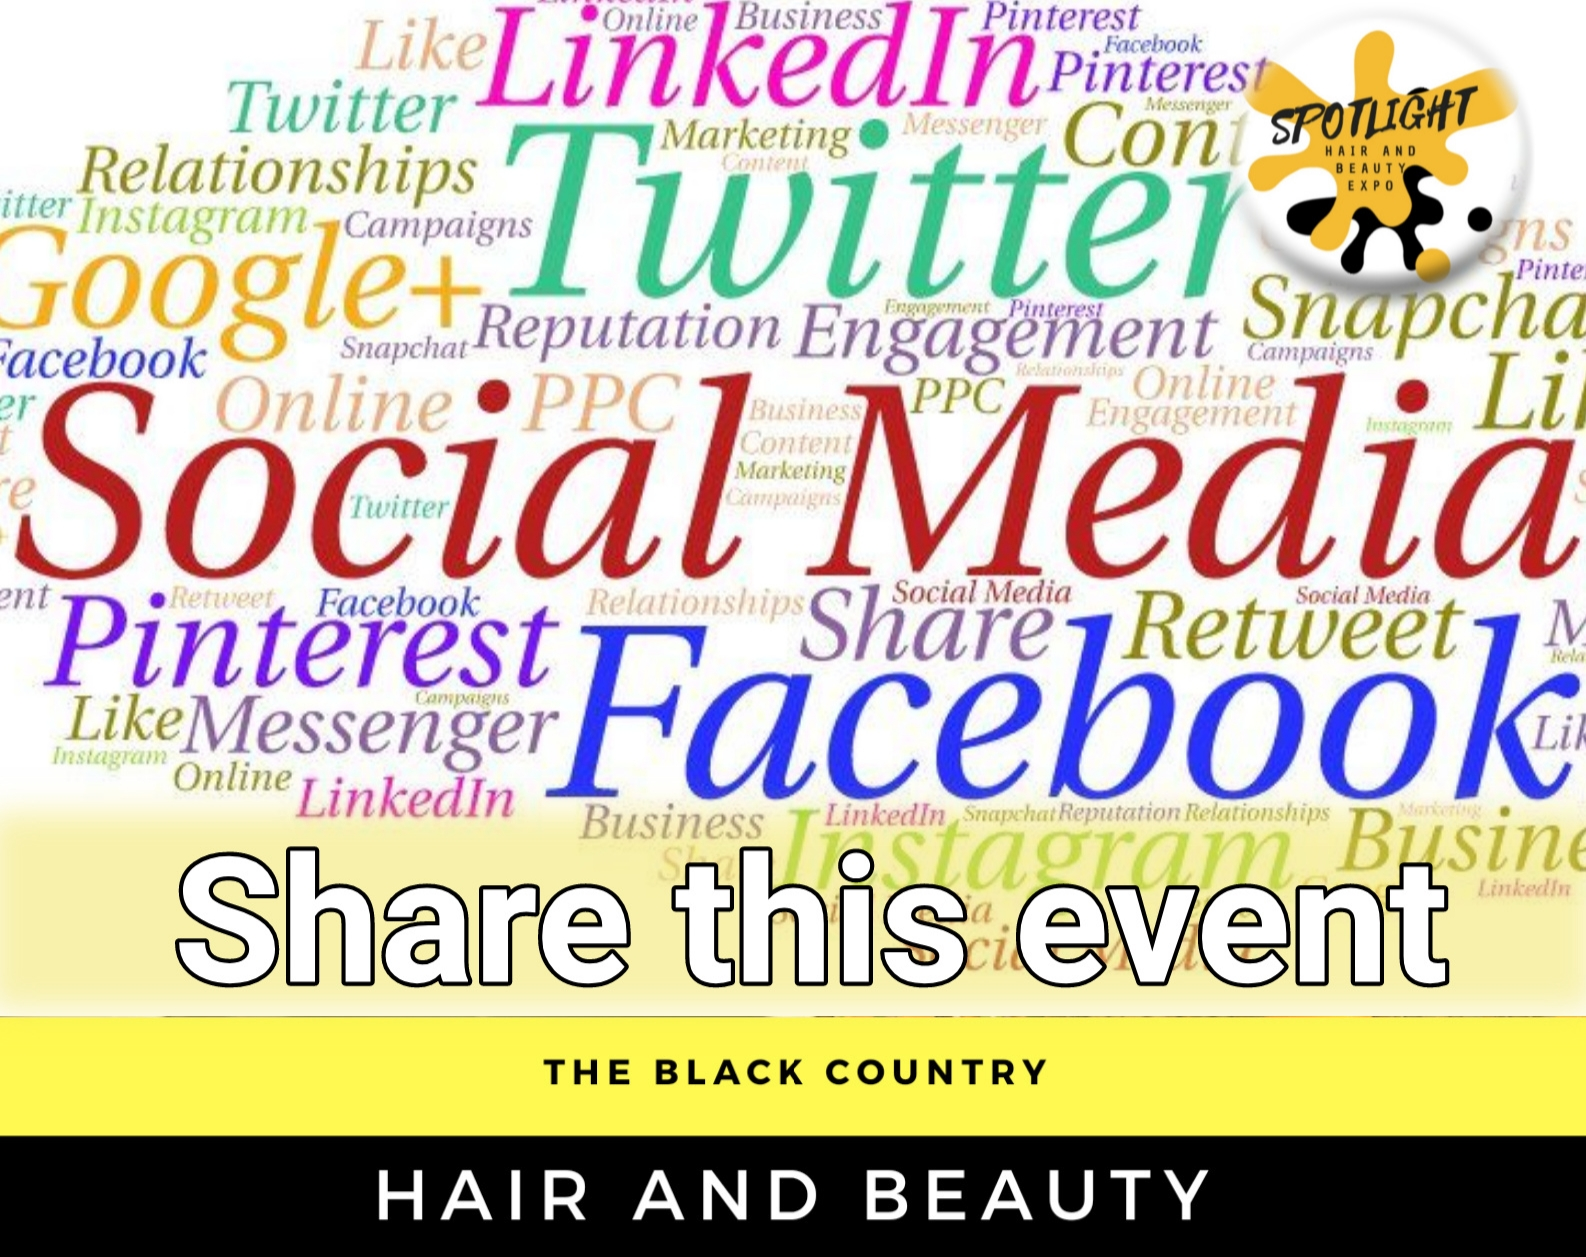 SHARE OUR HAIR AND BEAUTY SHOW